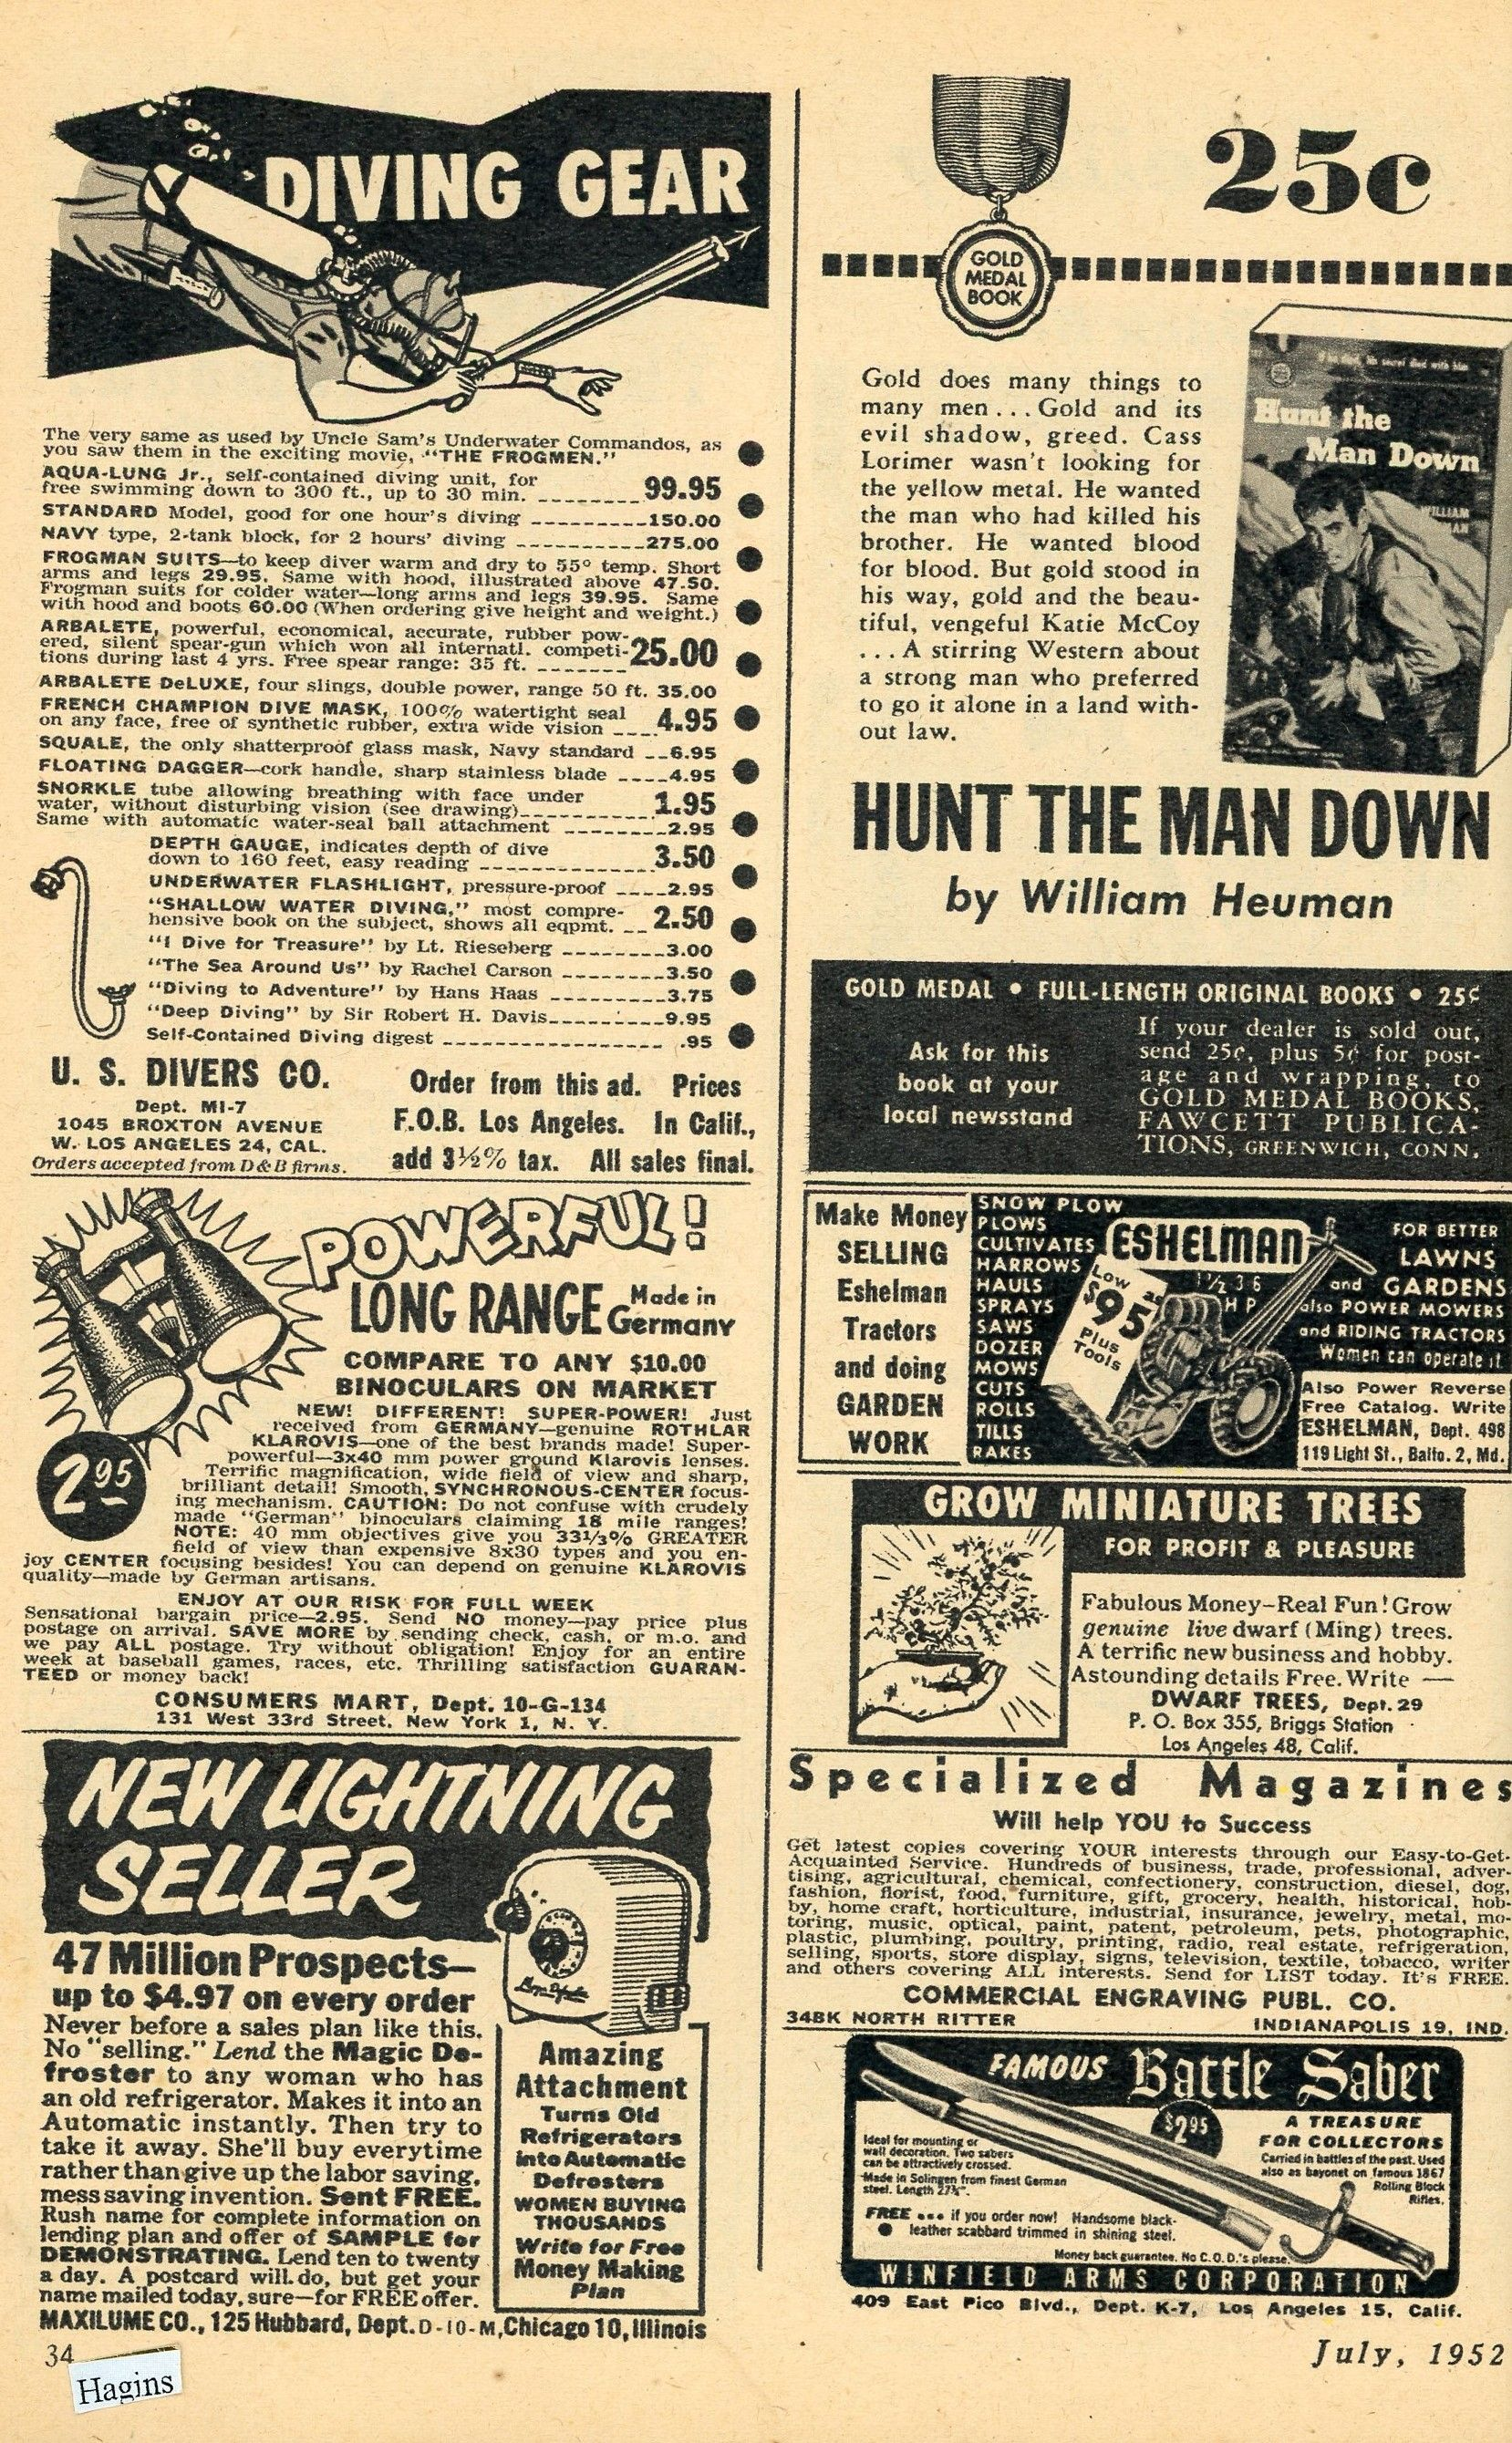 1952 ads. something for everyone. Hagins collection.